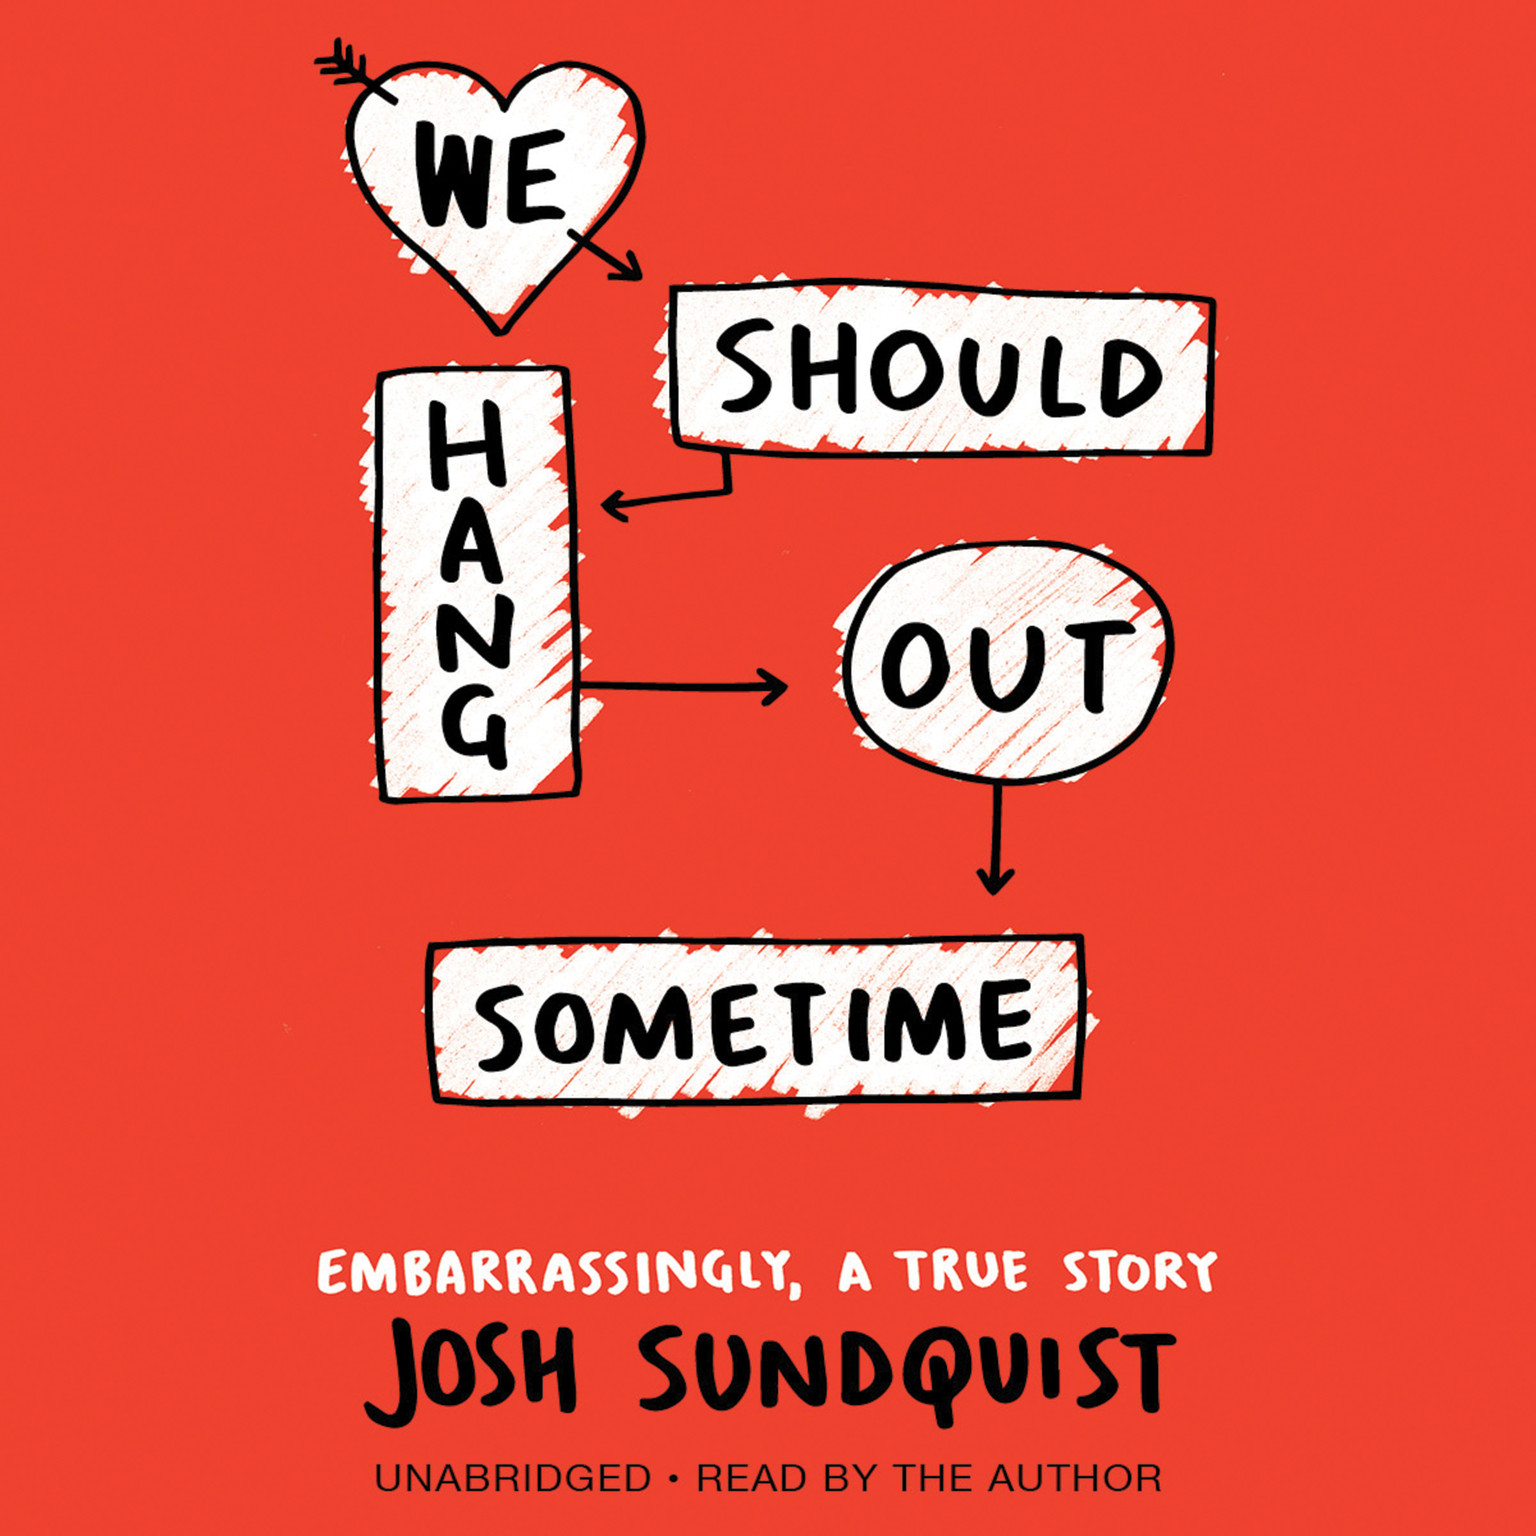 Printable We Should Hang Out Sometime: Embarrassingly, a True Story Audiobook Cover Art